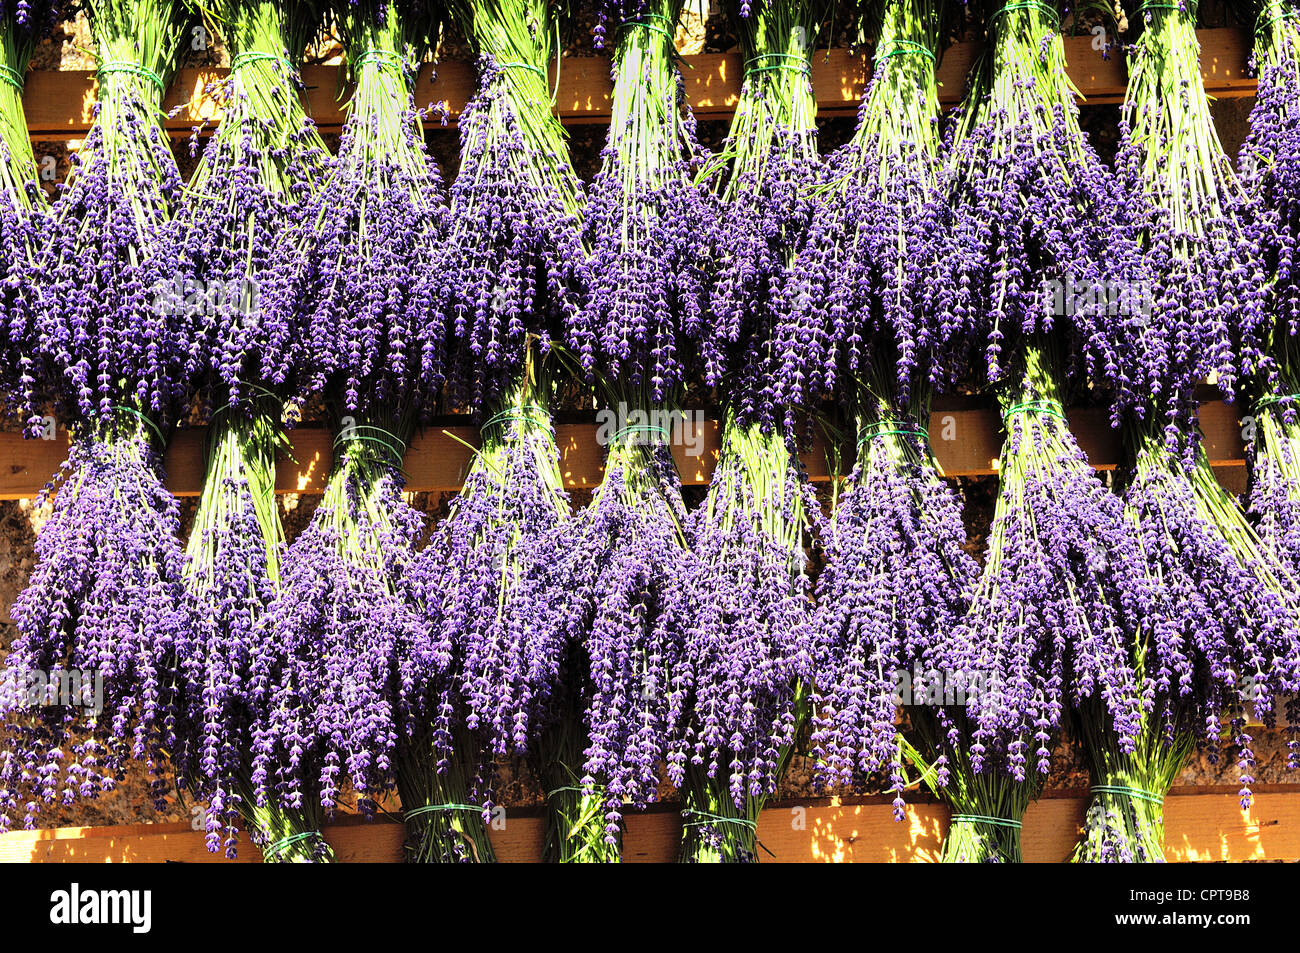 Bundles of lavender hung to dry in the sun - Stock Image